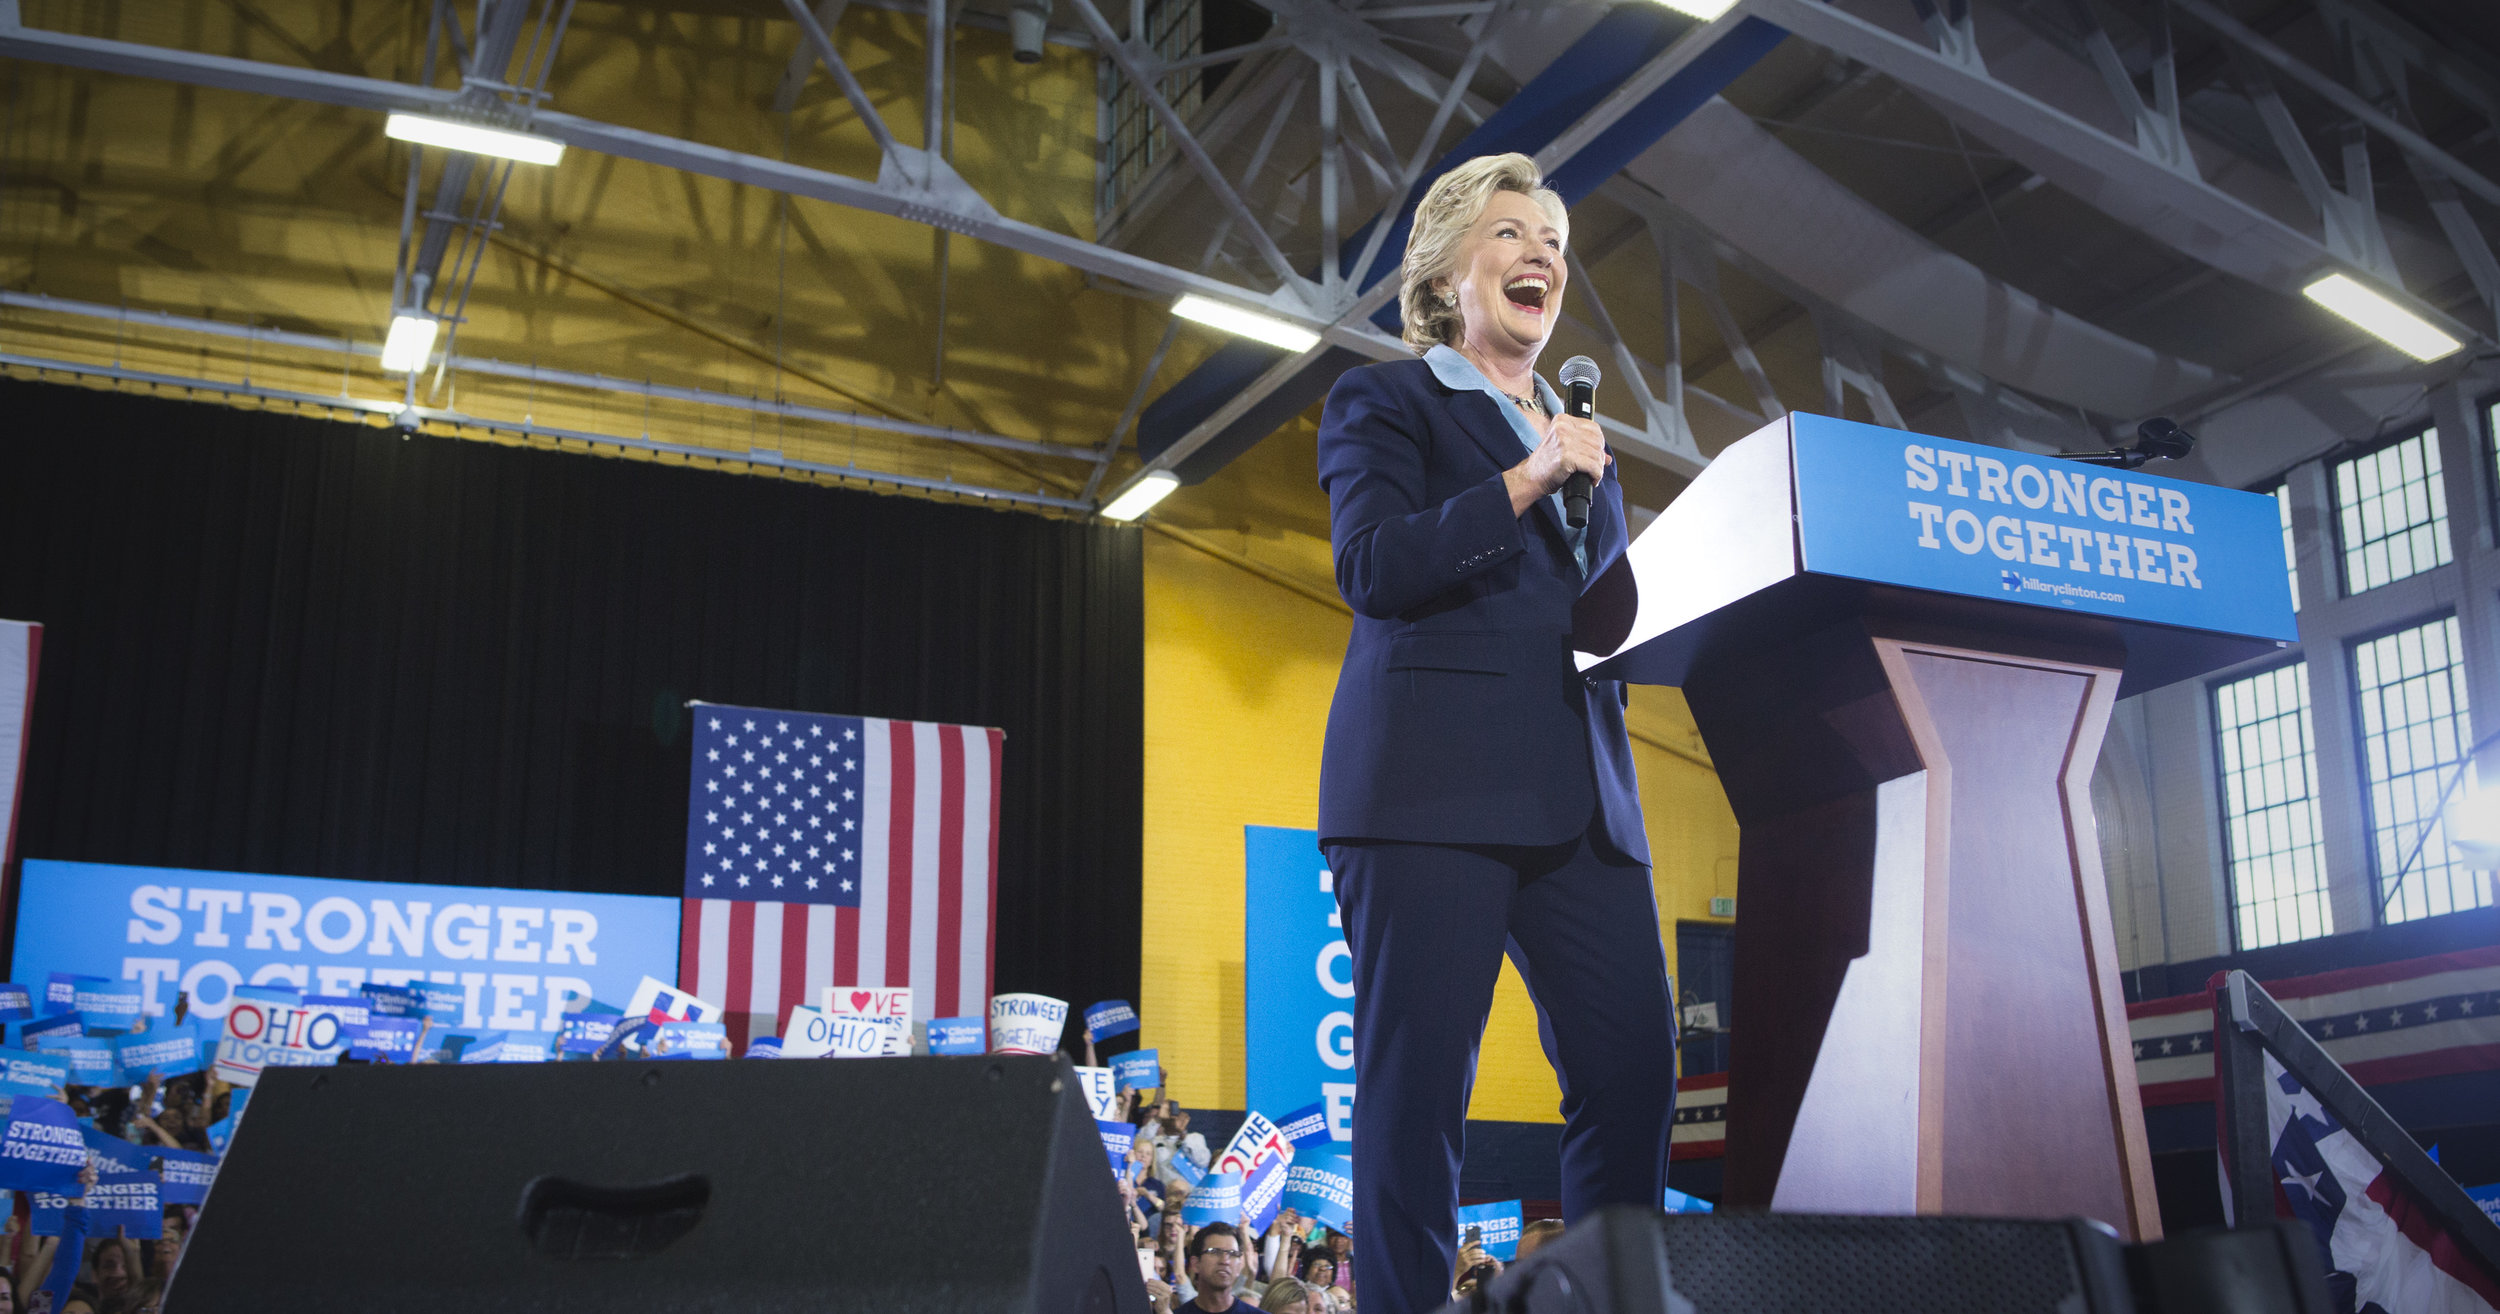 10032016_BJM_Hillary_Campaigns_in_Akron_Ohio_13.jpg